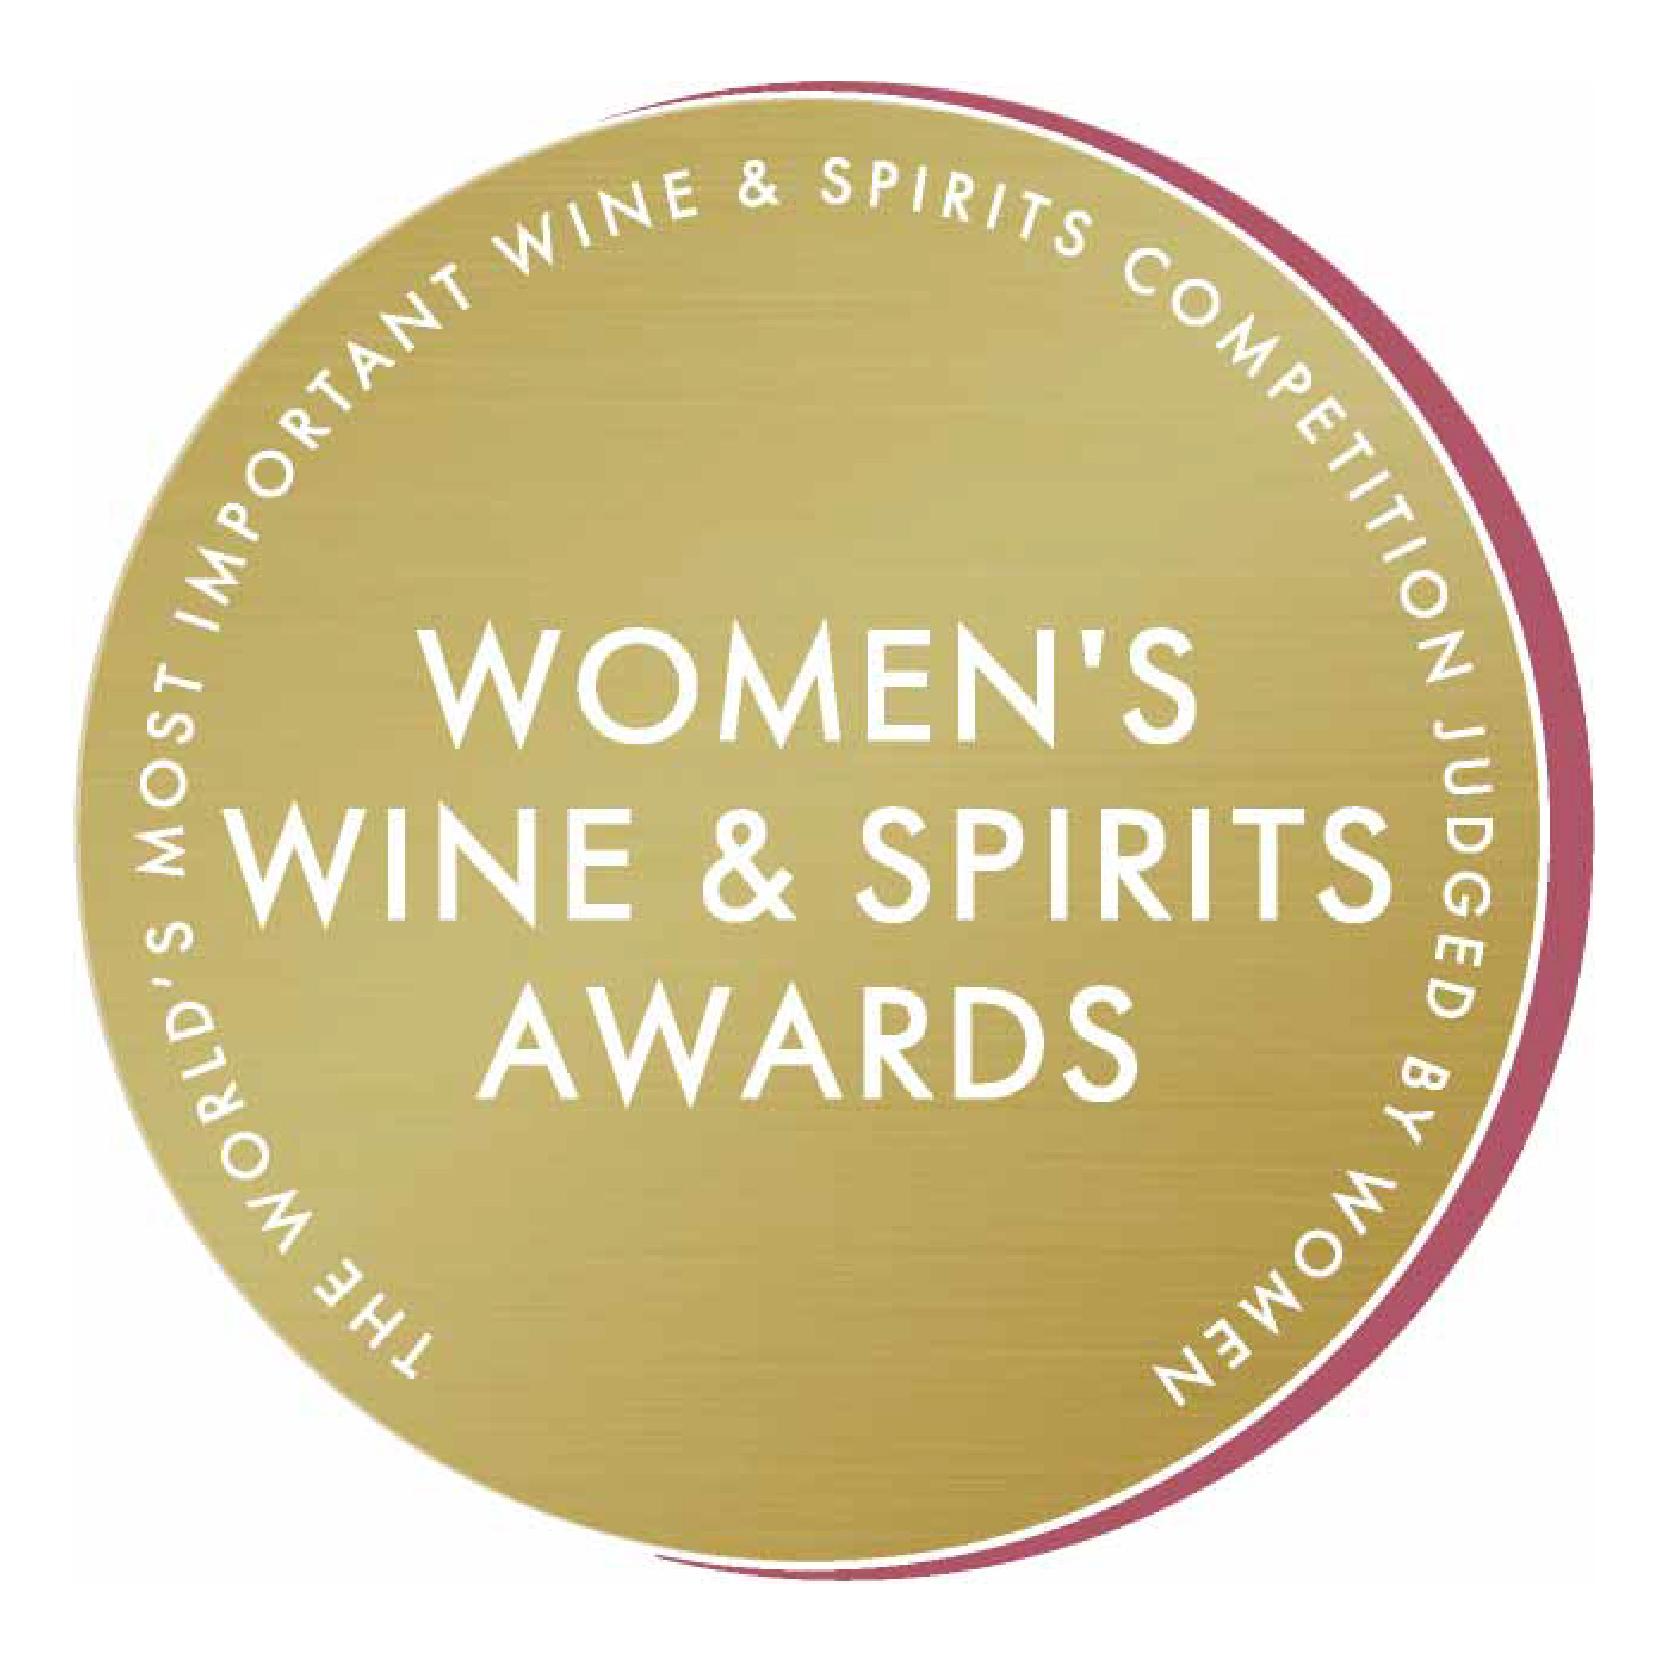 Women's Wine & Spirits Awards 2020